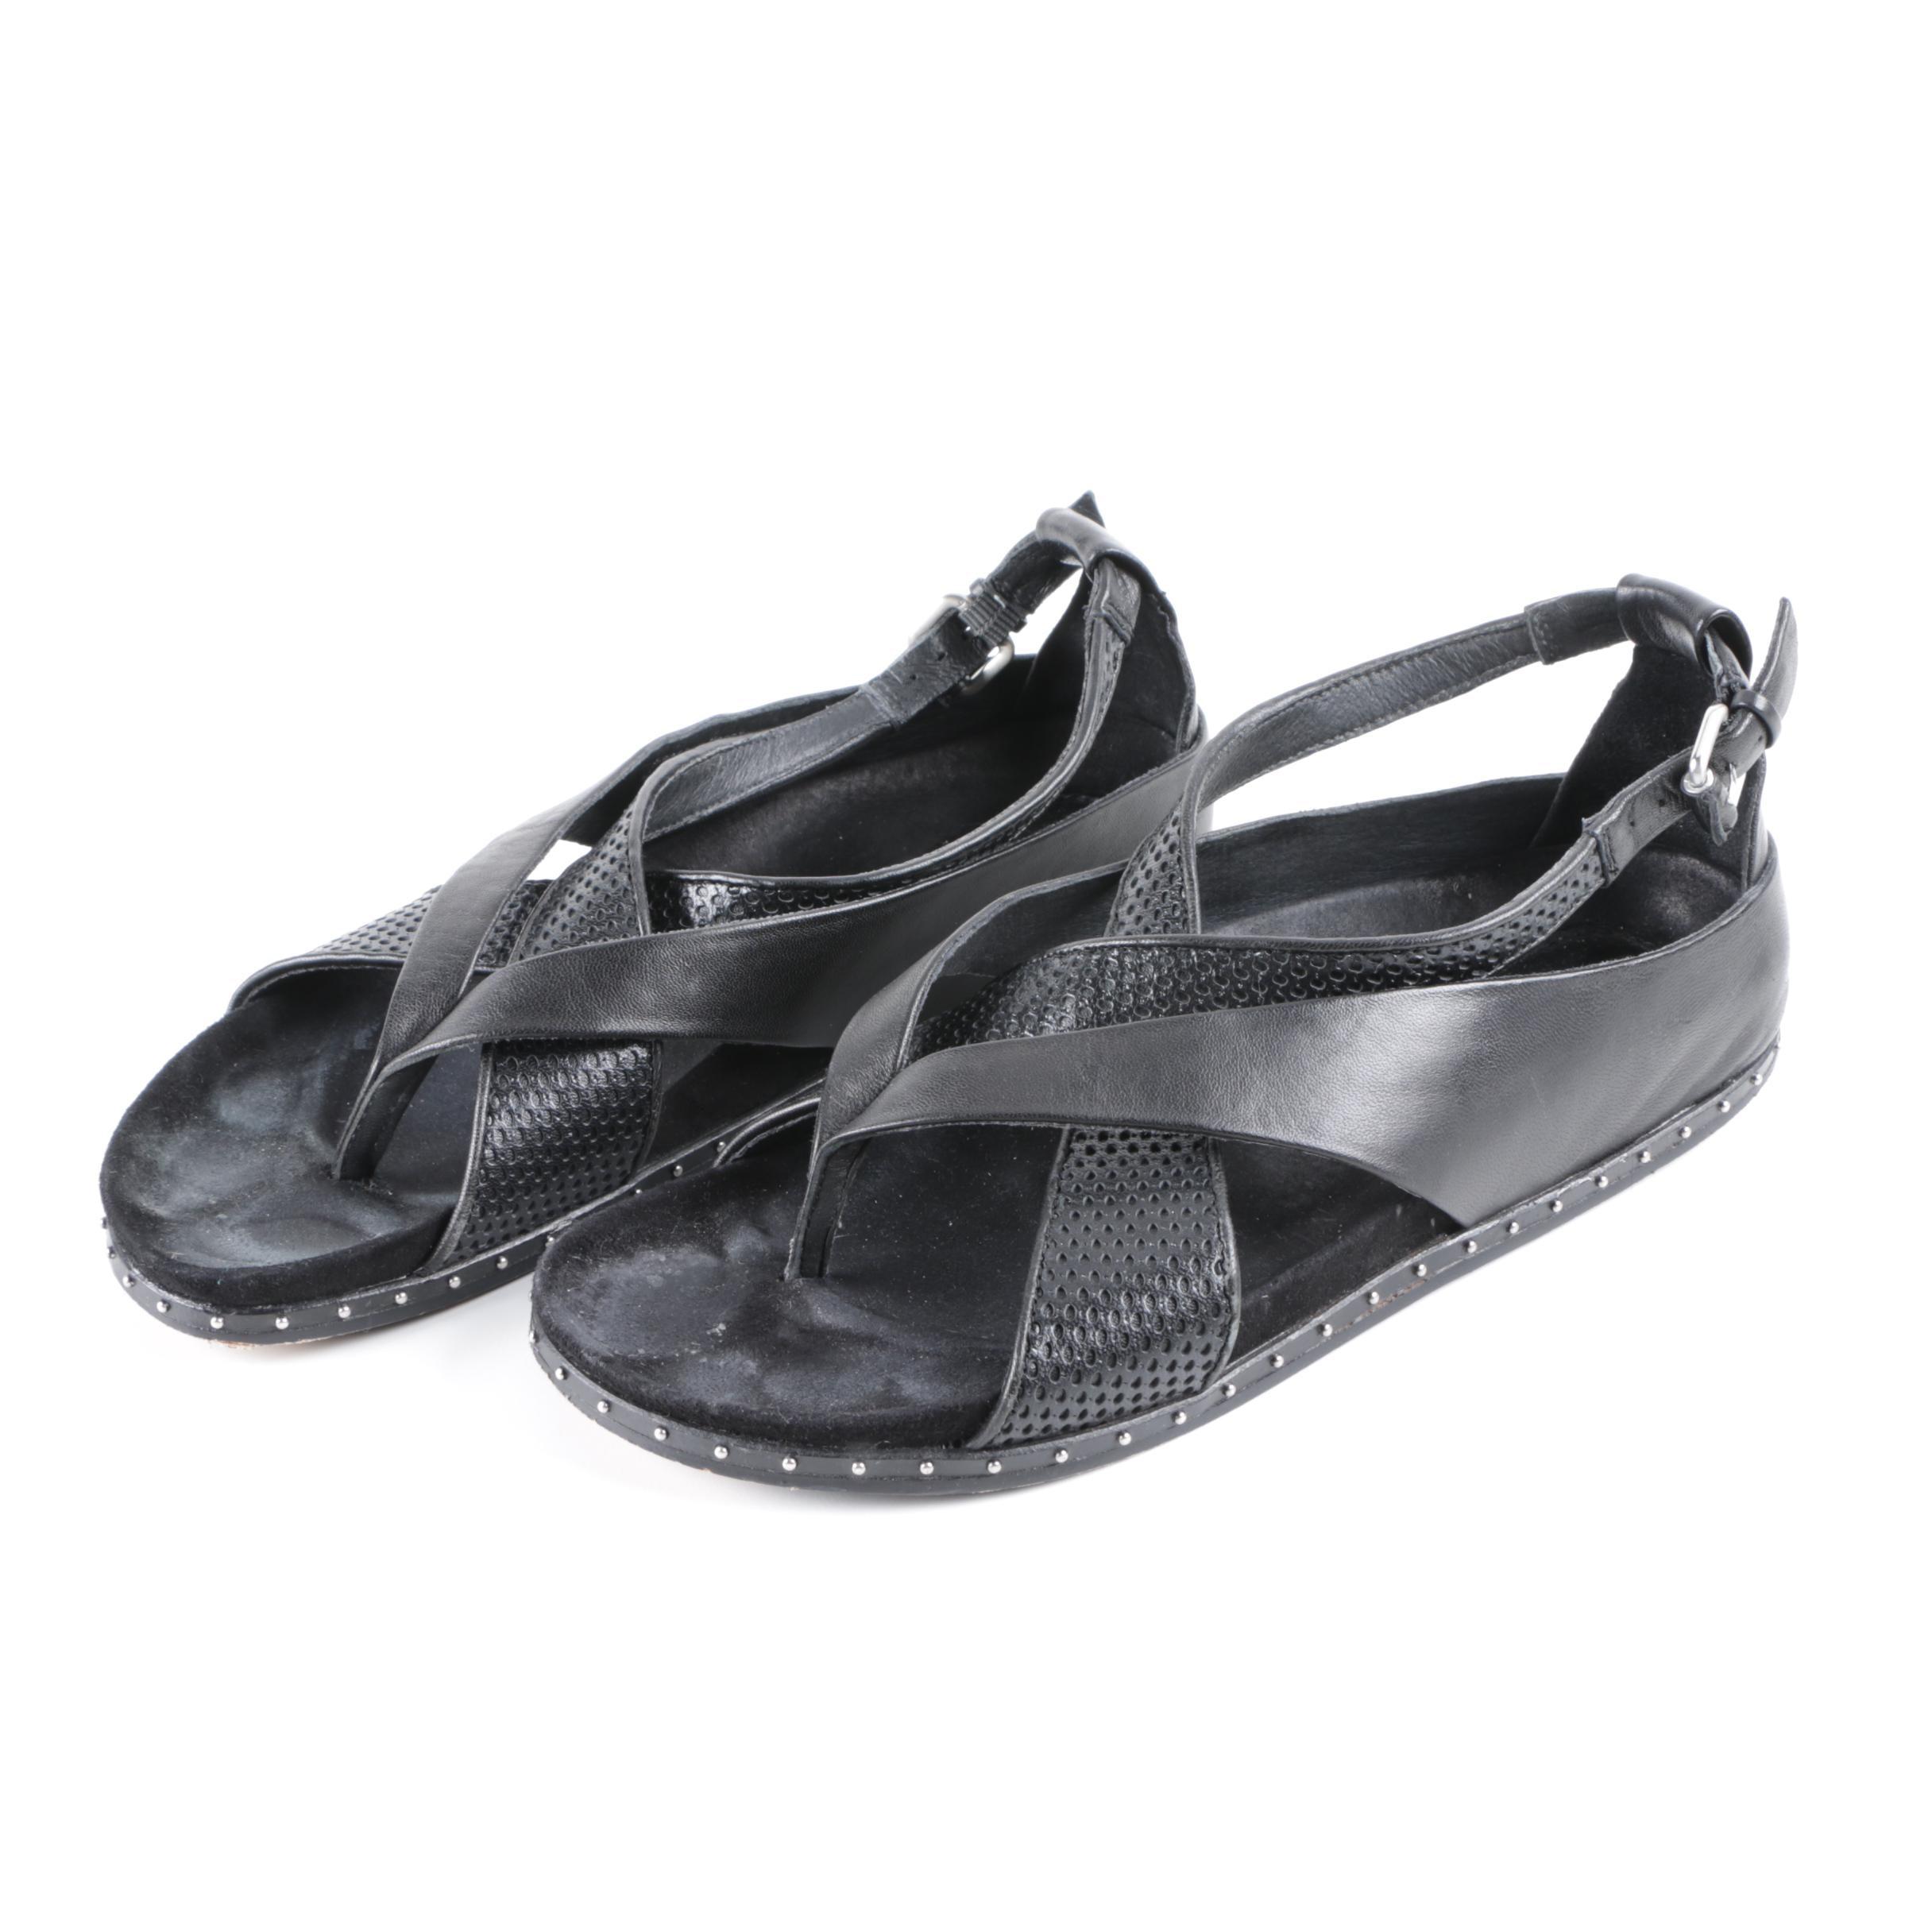 L.A.M.B. Black Leather Sandals with Perforated Accents